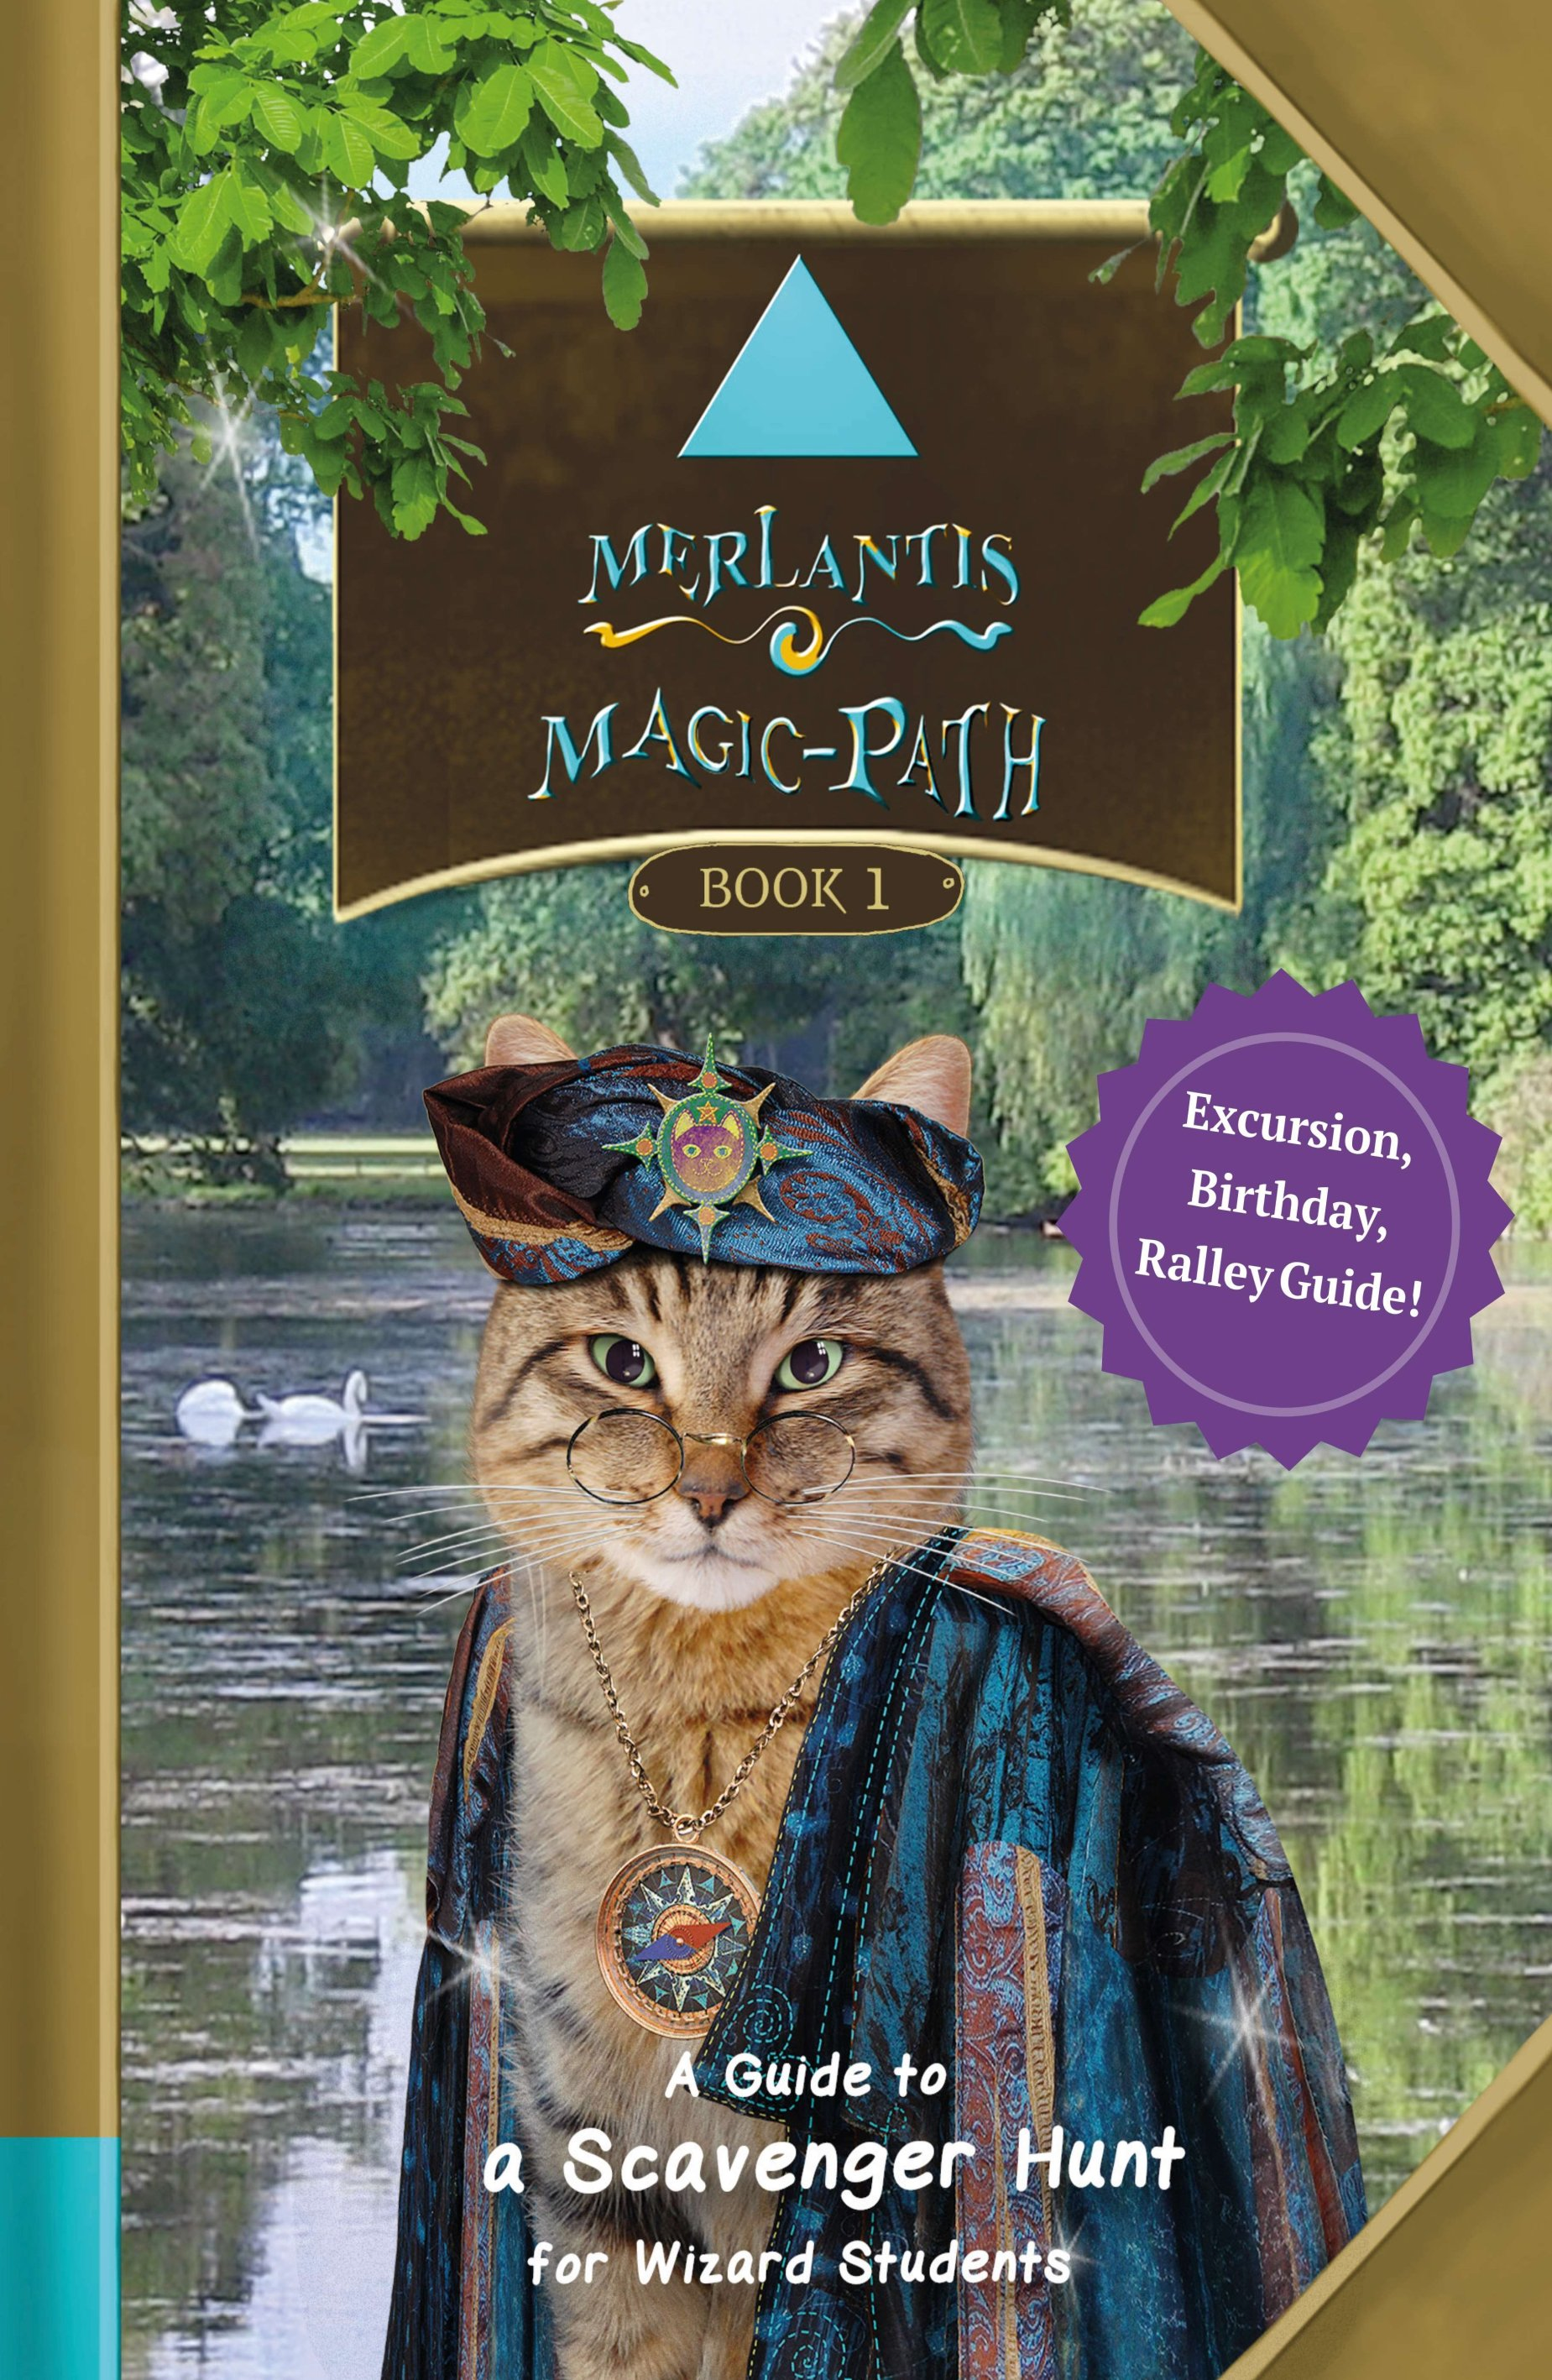 Merlantis Magic Path - A Guide to a Scavenger Hunt for Wizard Students